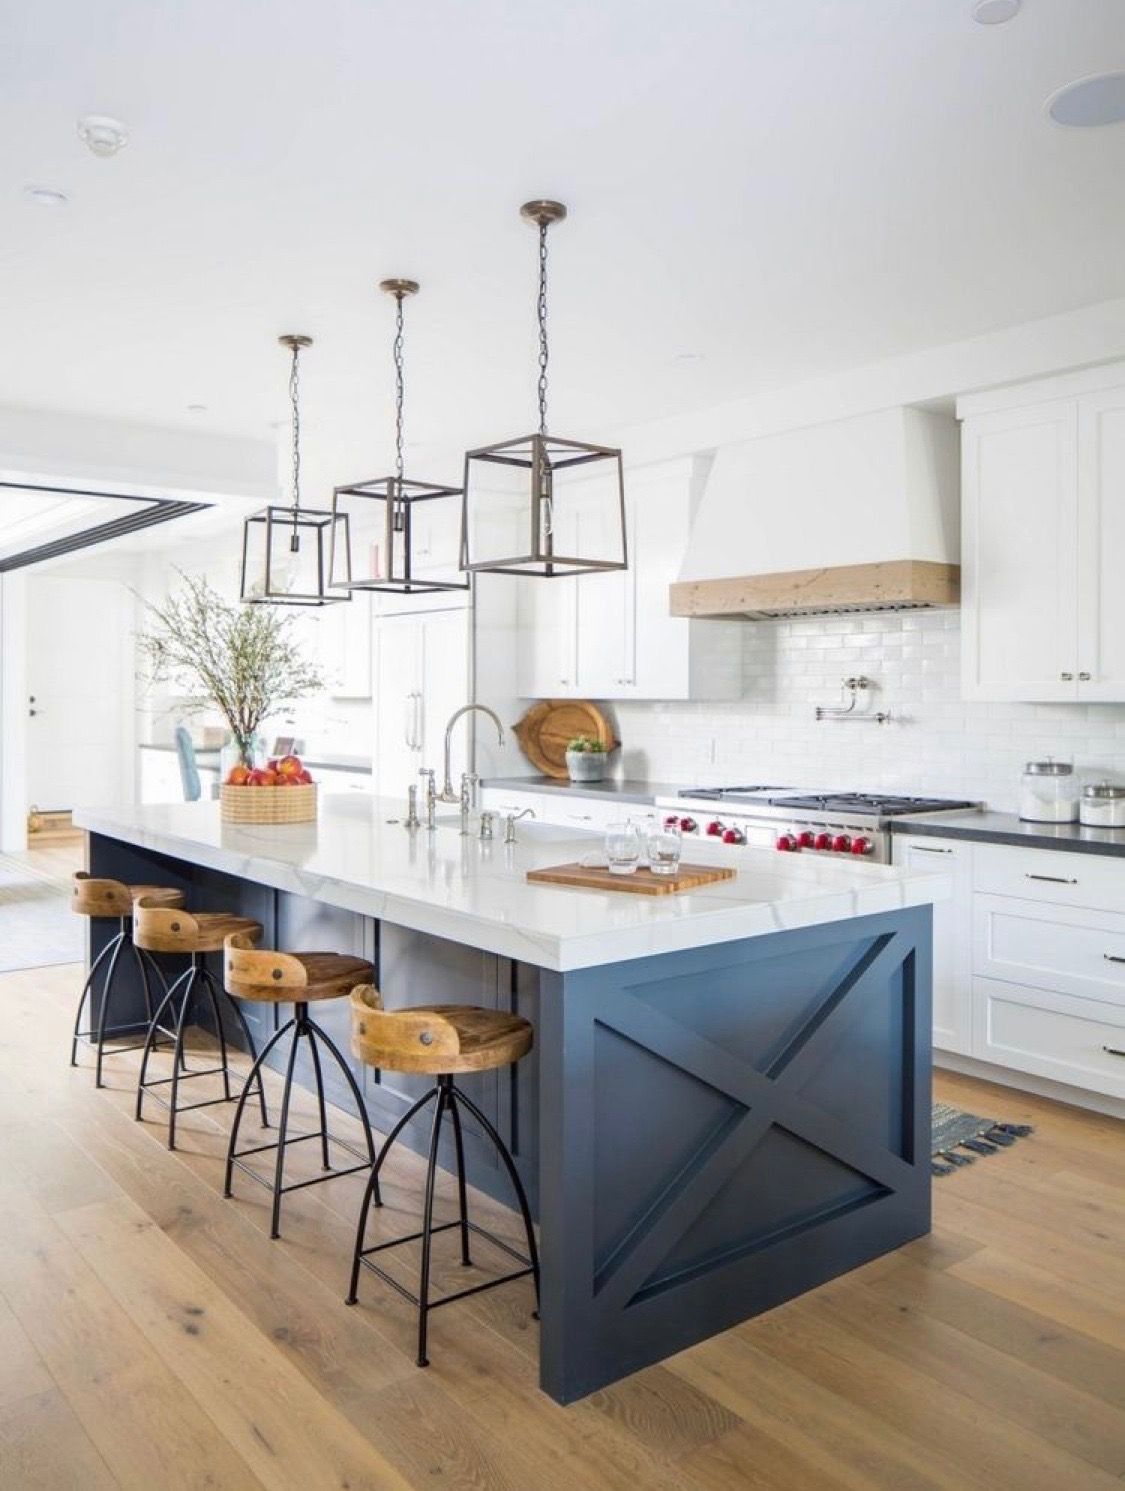 Pin By Kimberley Minier On Franklin House In 2019 Blue Kitchen